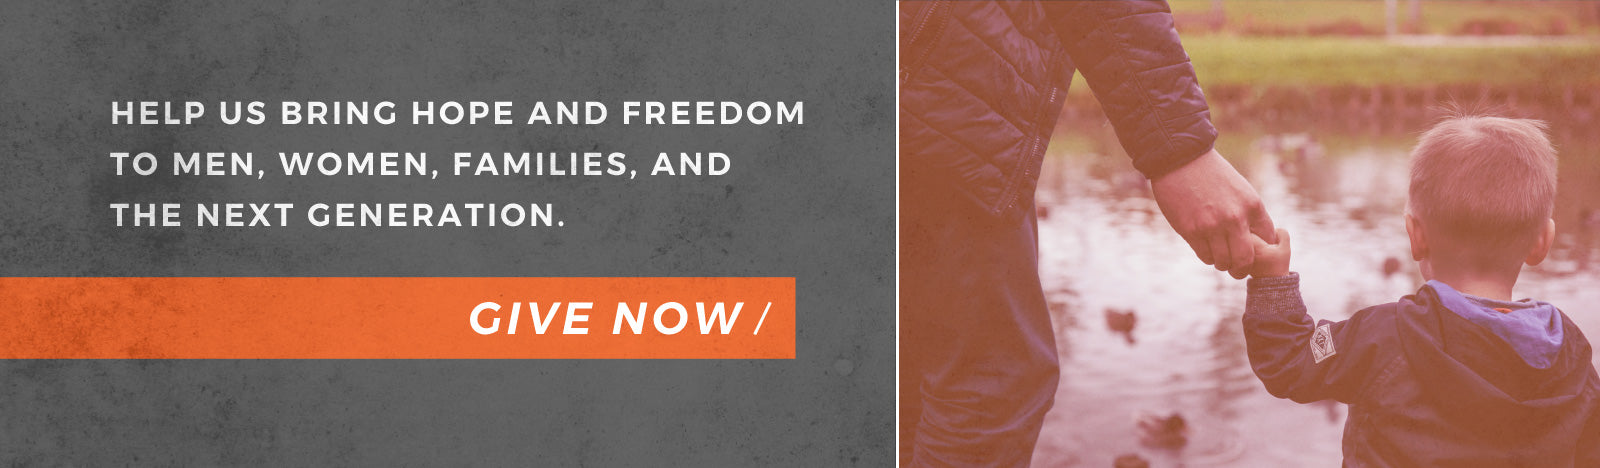 Help us bring hope and freedom to men, women, families, and the next generation. Give now.